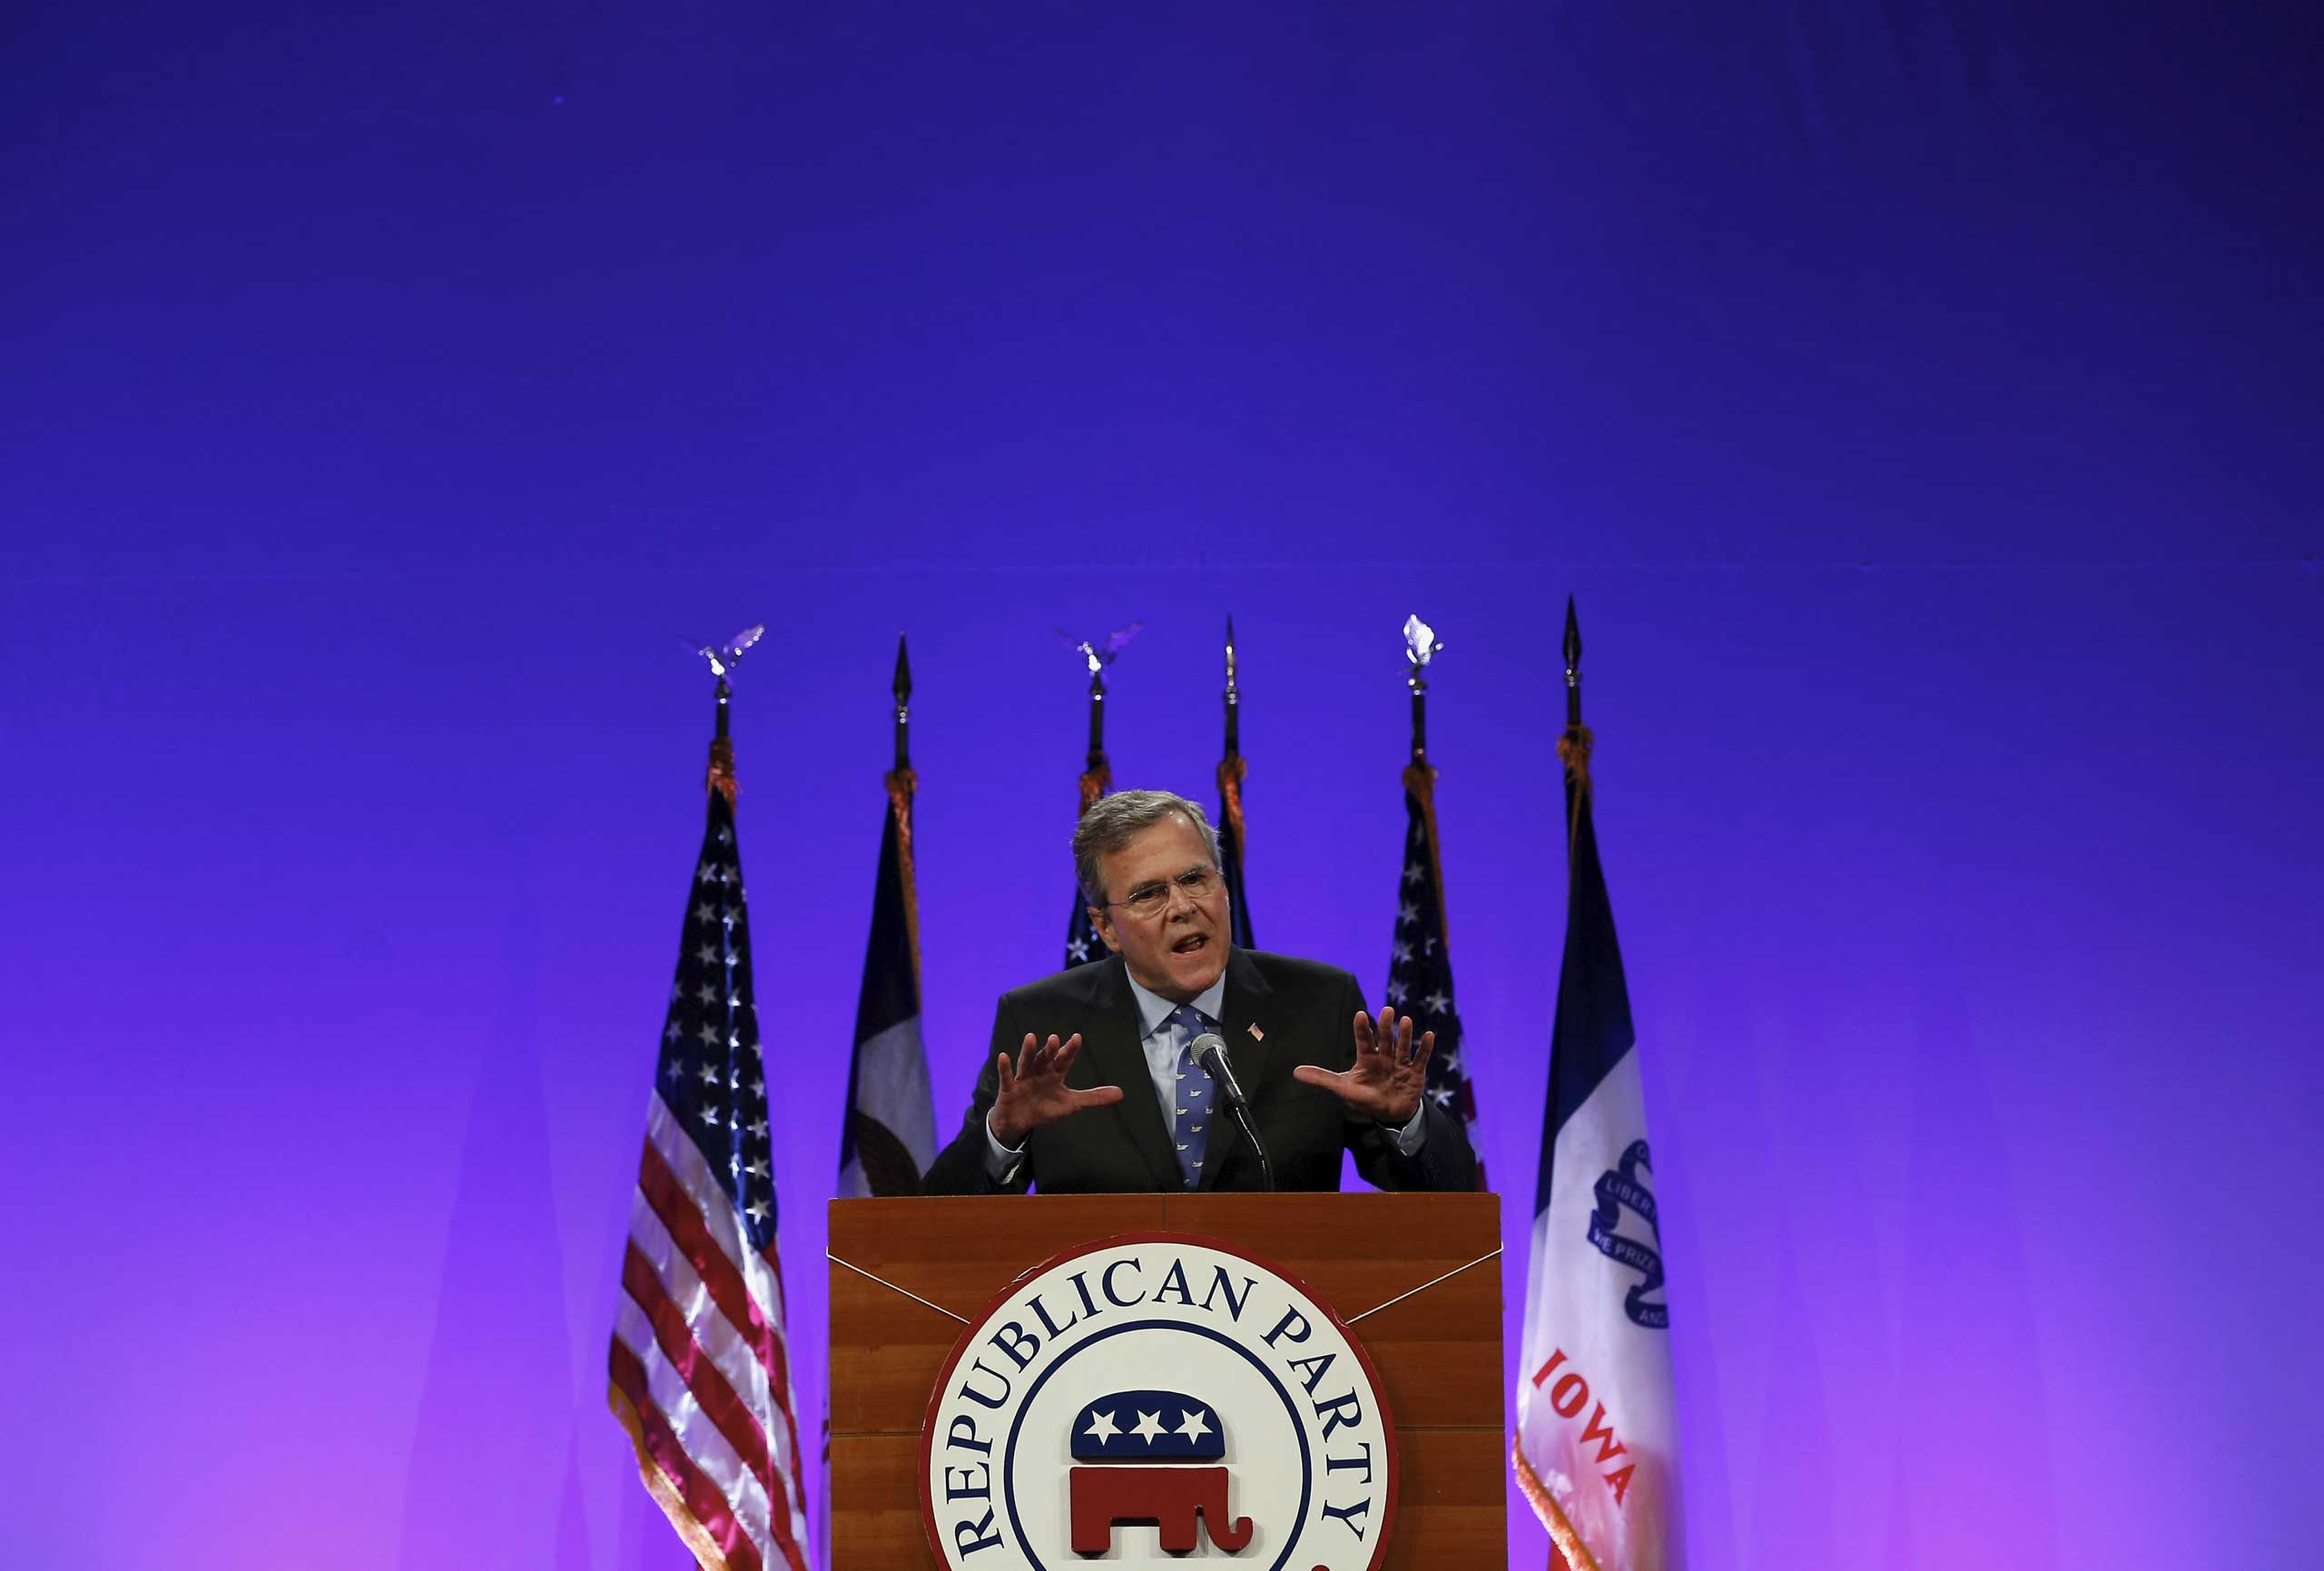 Former Florida Governor Jeb Bush speaks at the Republican Party of Iowa's Lincoln Dinner in Des Moines, Iowa, United States, May 16, 2015.